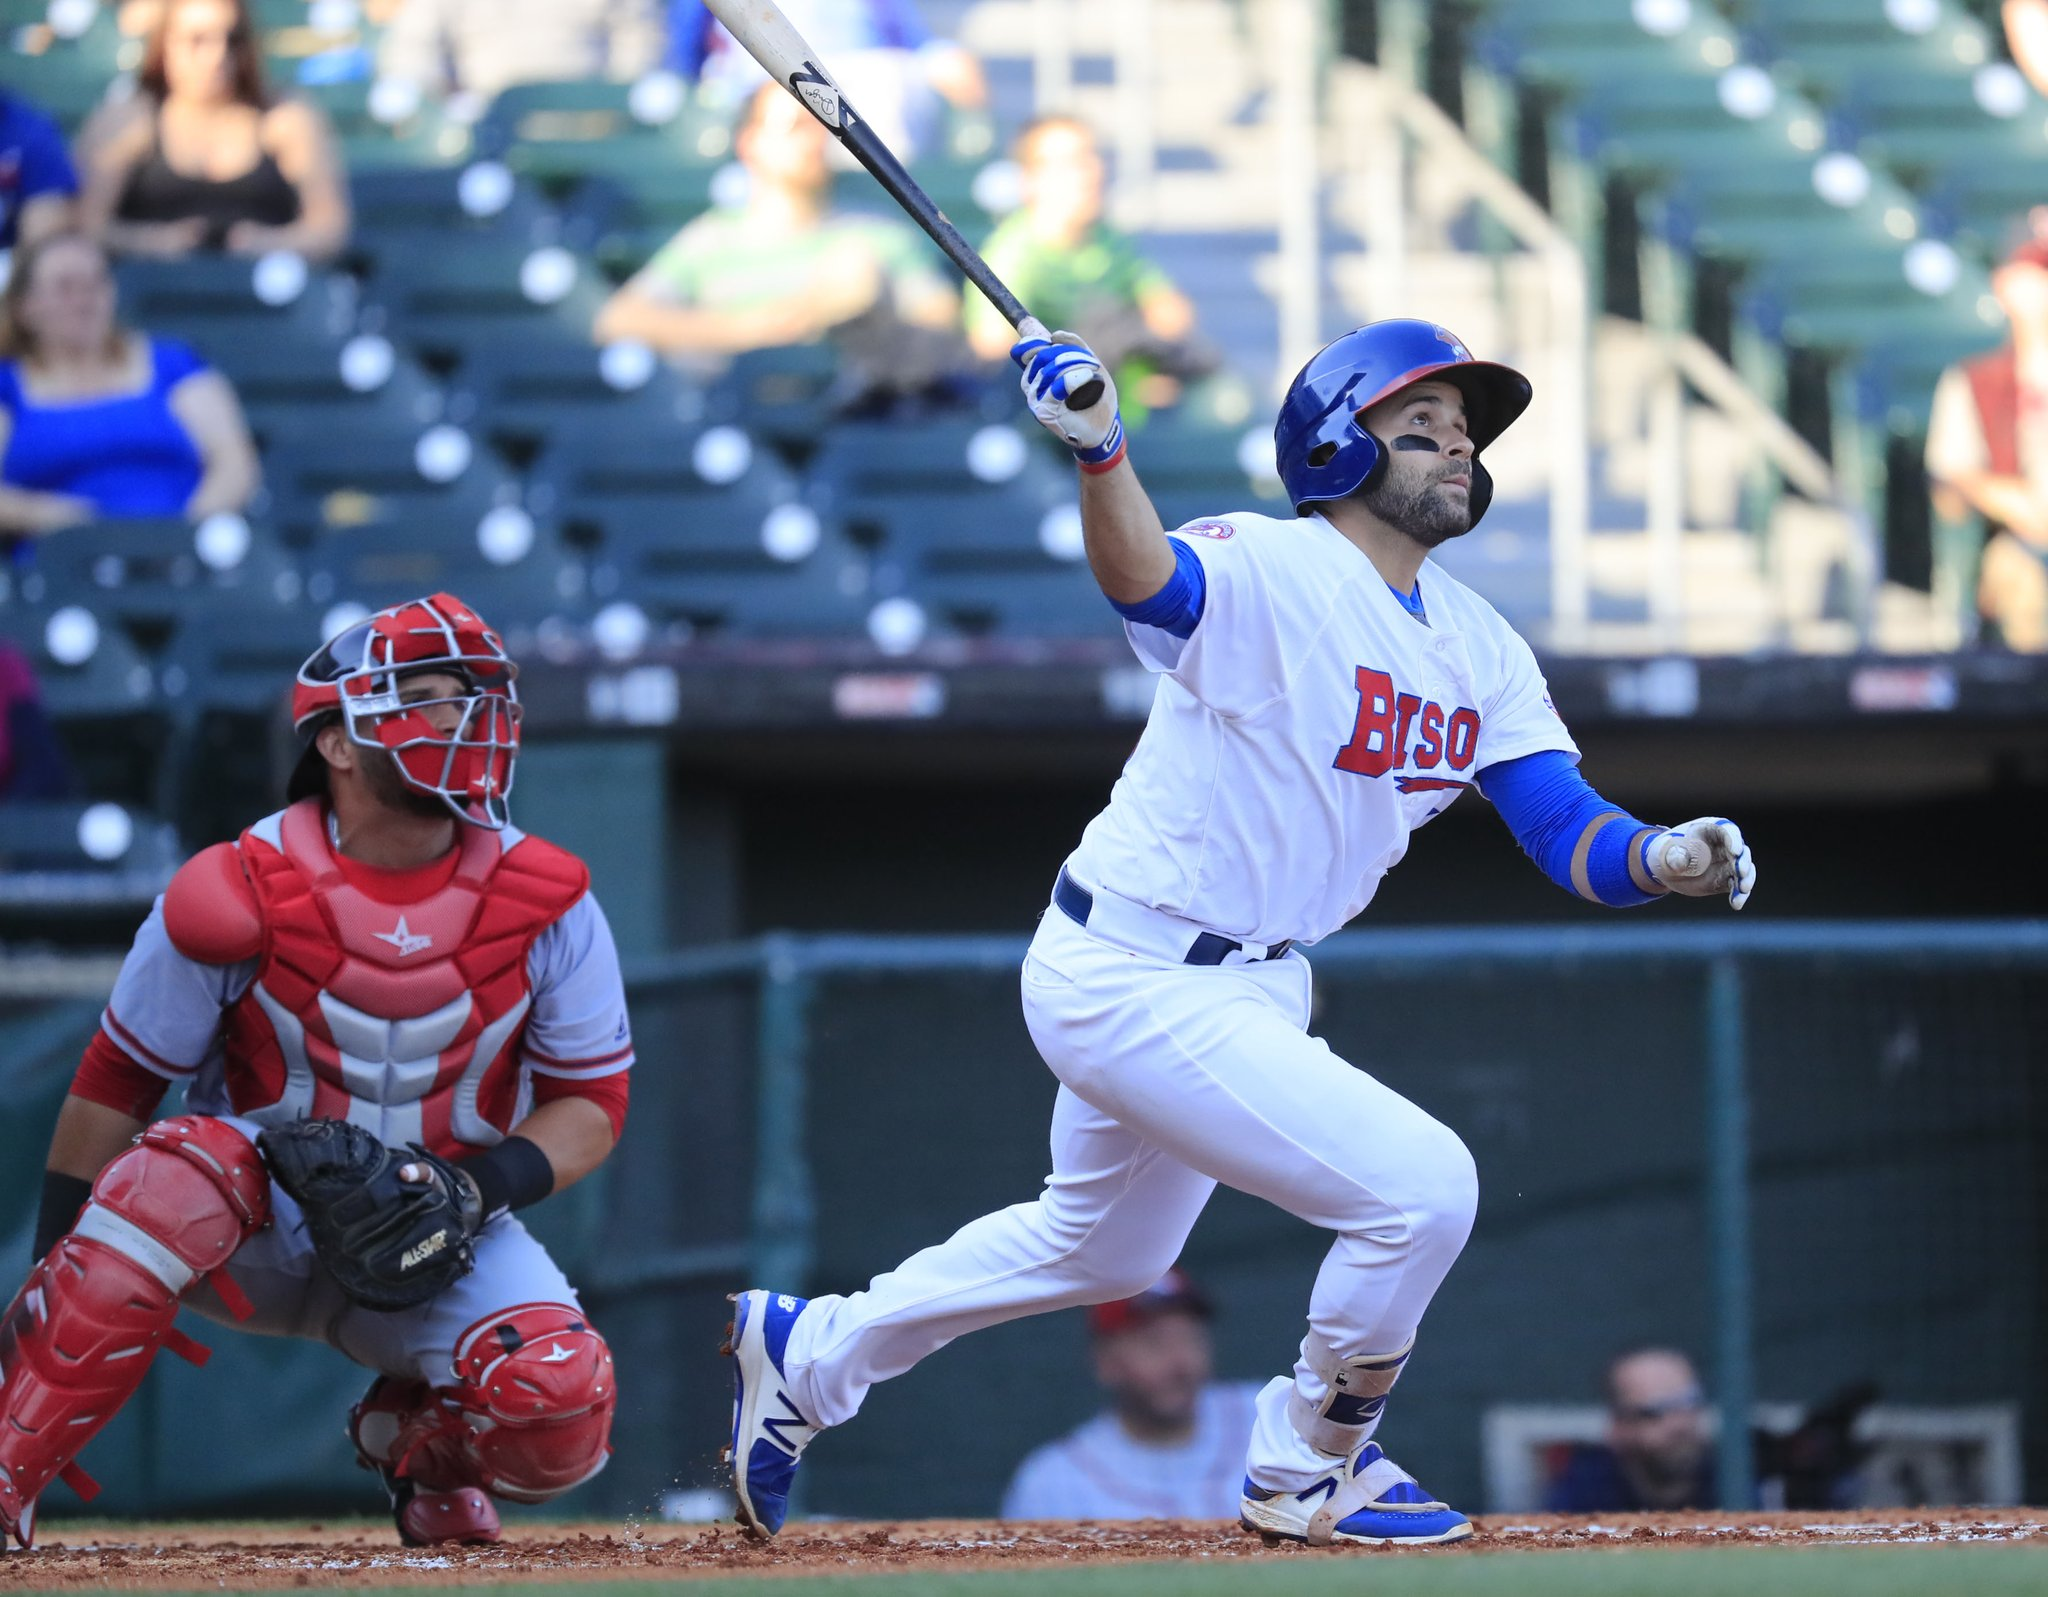 Catcher Raffy Lopez starred for the Bisons Tuesday against Syracuse. (Harry Scull Jr./Buffalo News)